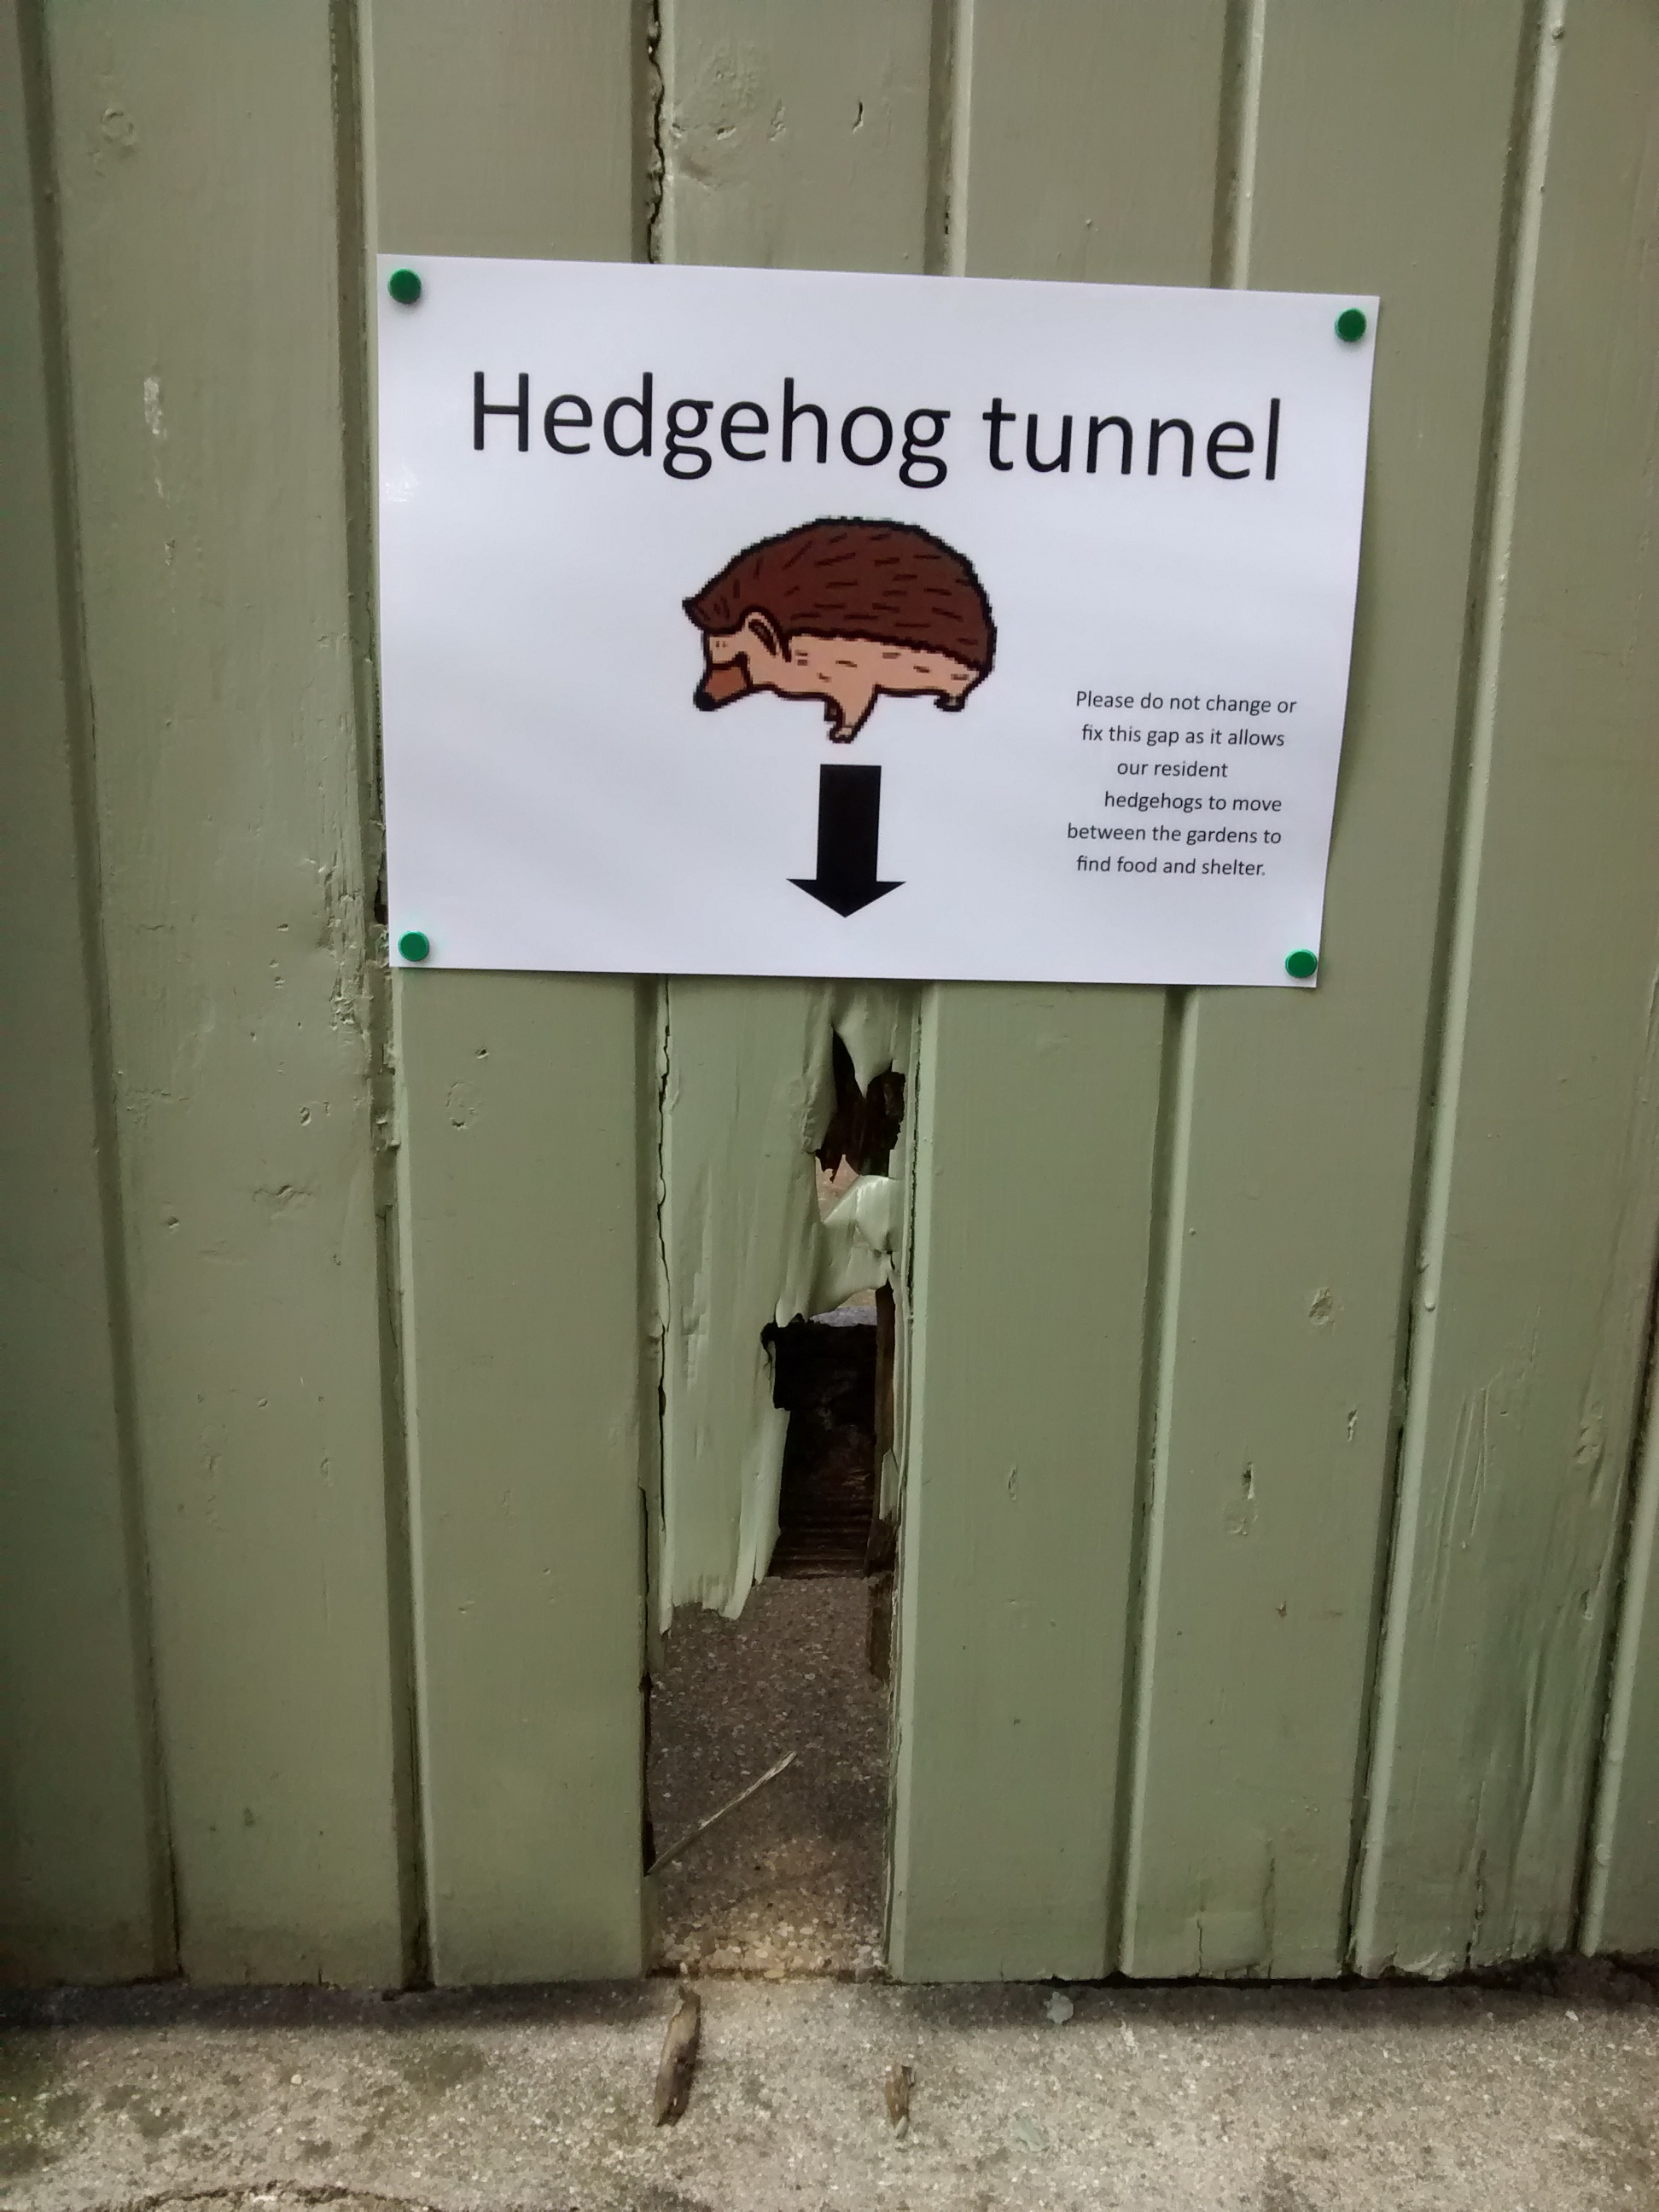 Hedgehog tunnel